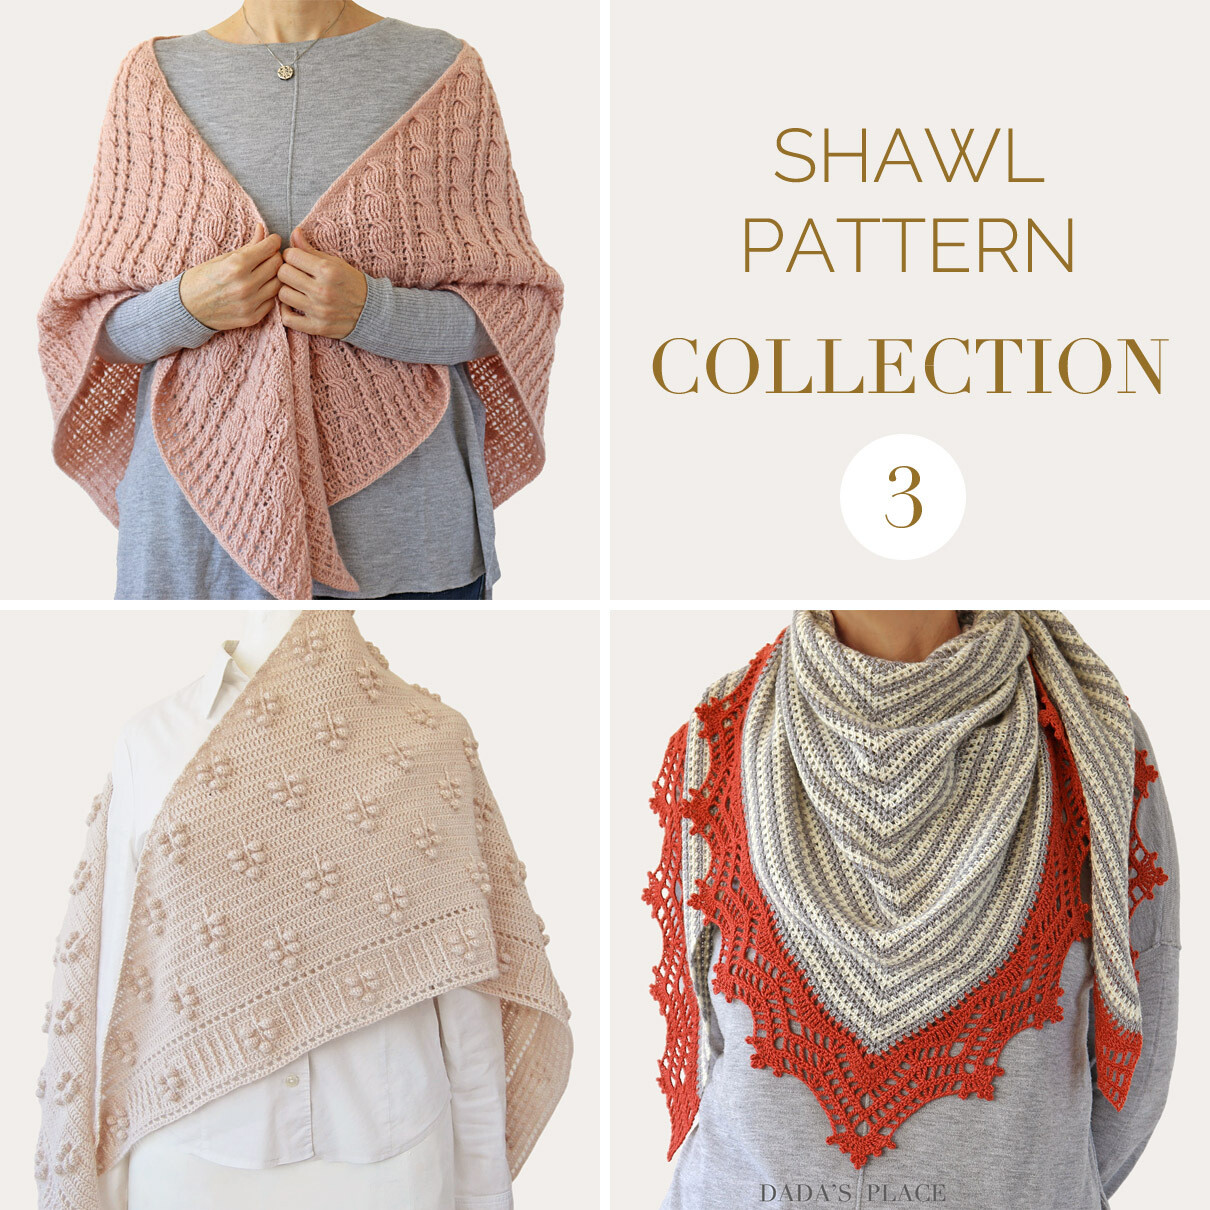 CROCHET SHAWL PATTERN COLLECTION 3